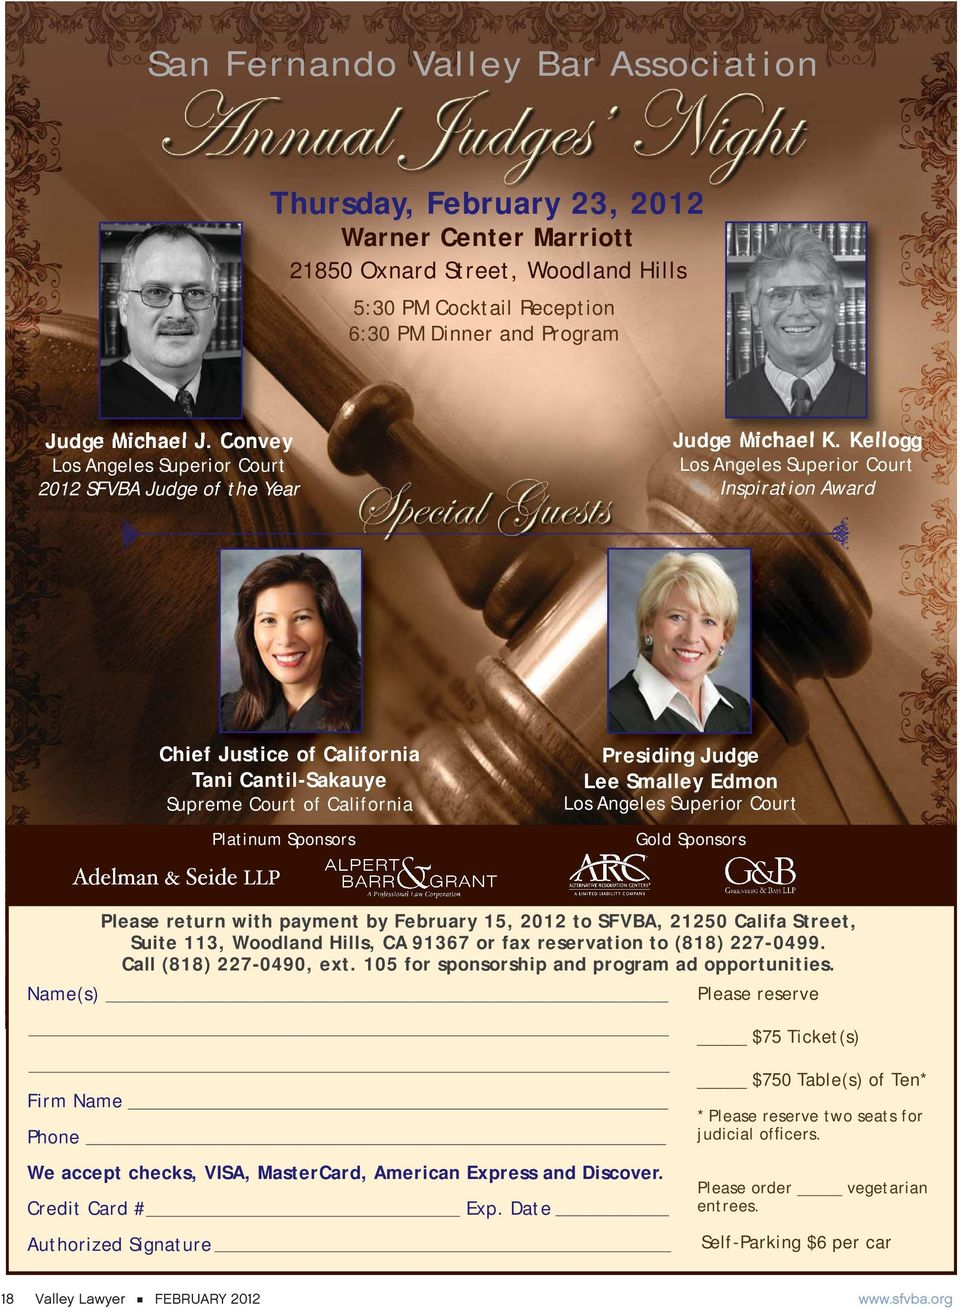 Kellogg Los Angeles Superior Court Inspiration Award Chief Justice of California Tani Cantil-Sakauye Supreme Court of California Platinum Sponsors Presiding Judge Lee Smalley Edmon Los Angeles